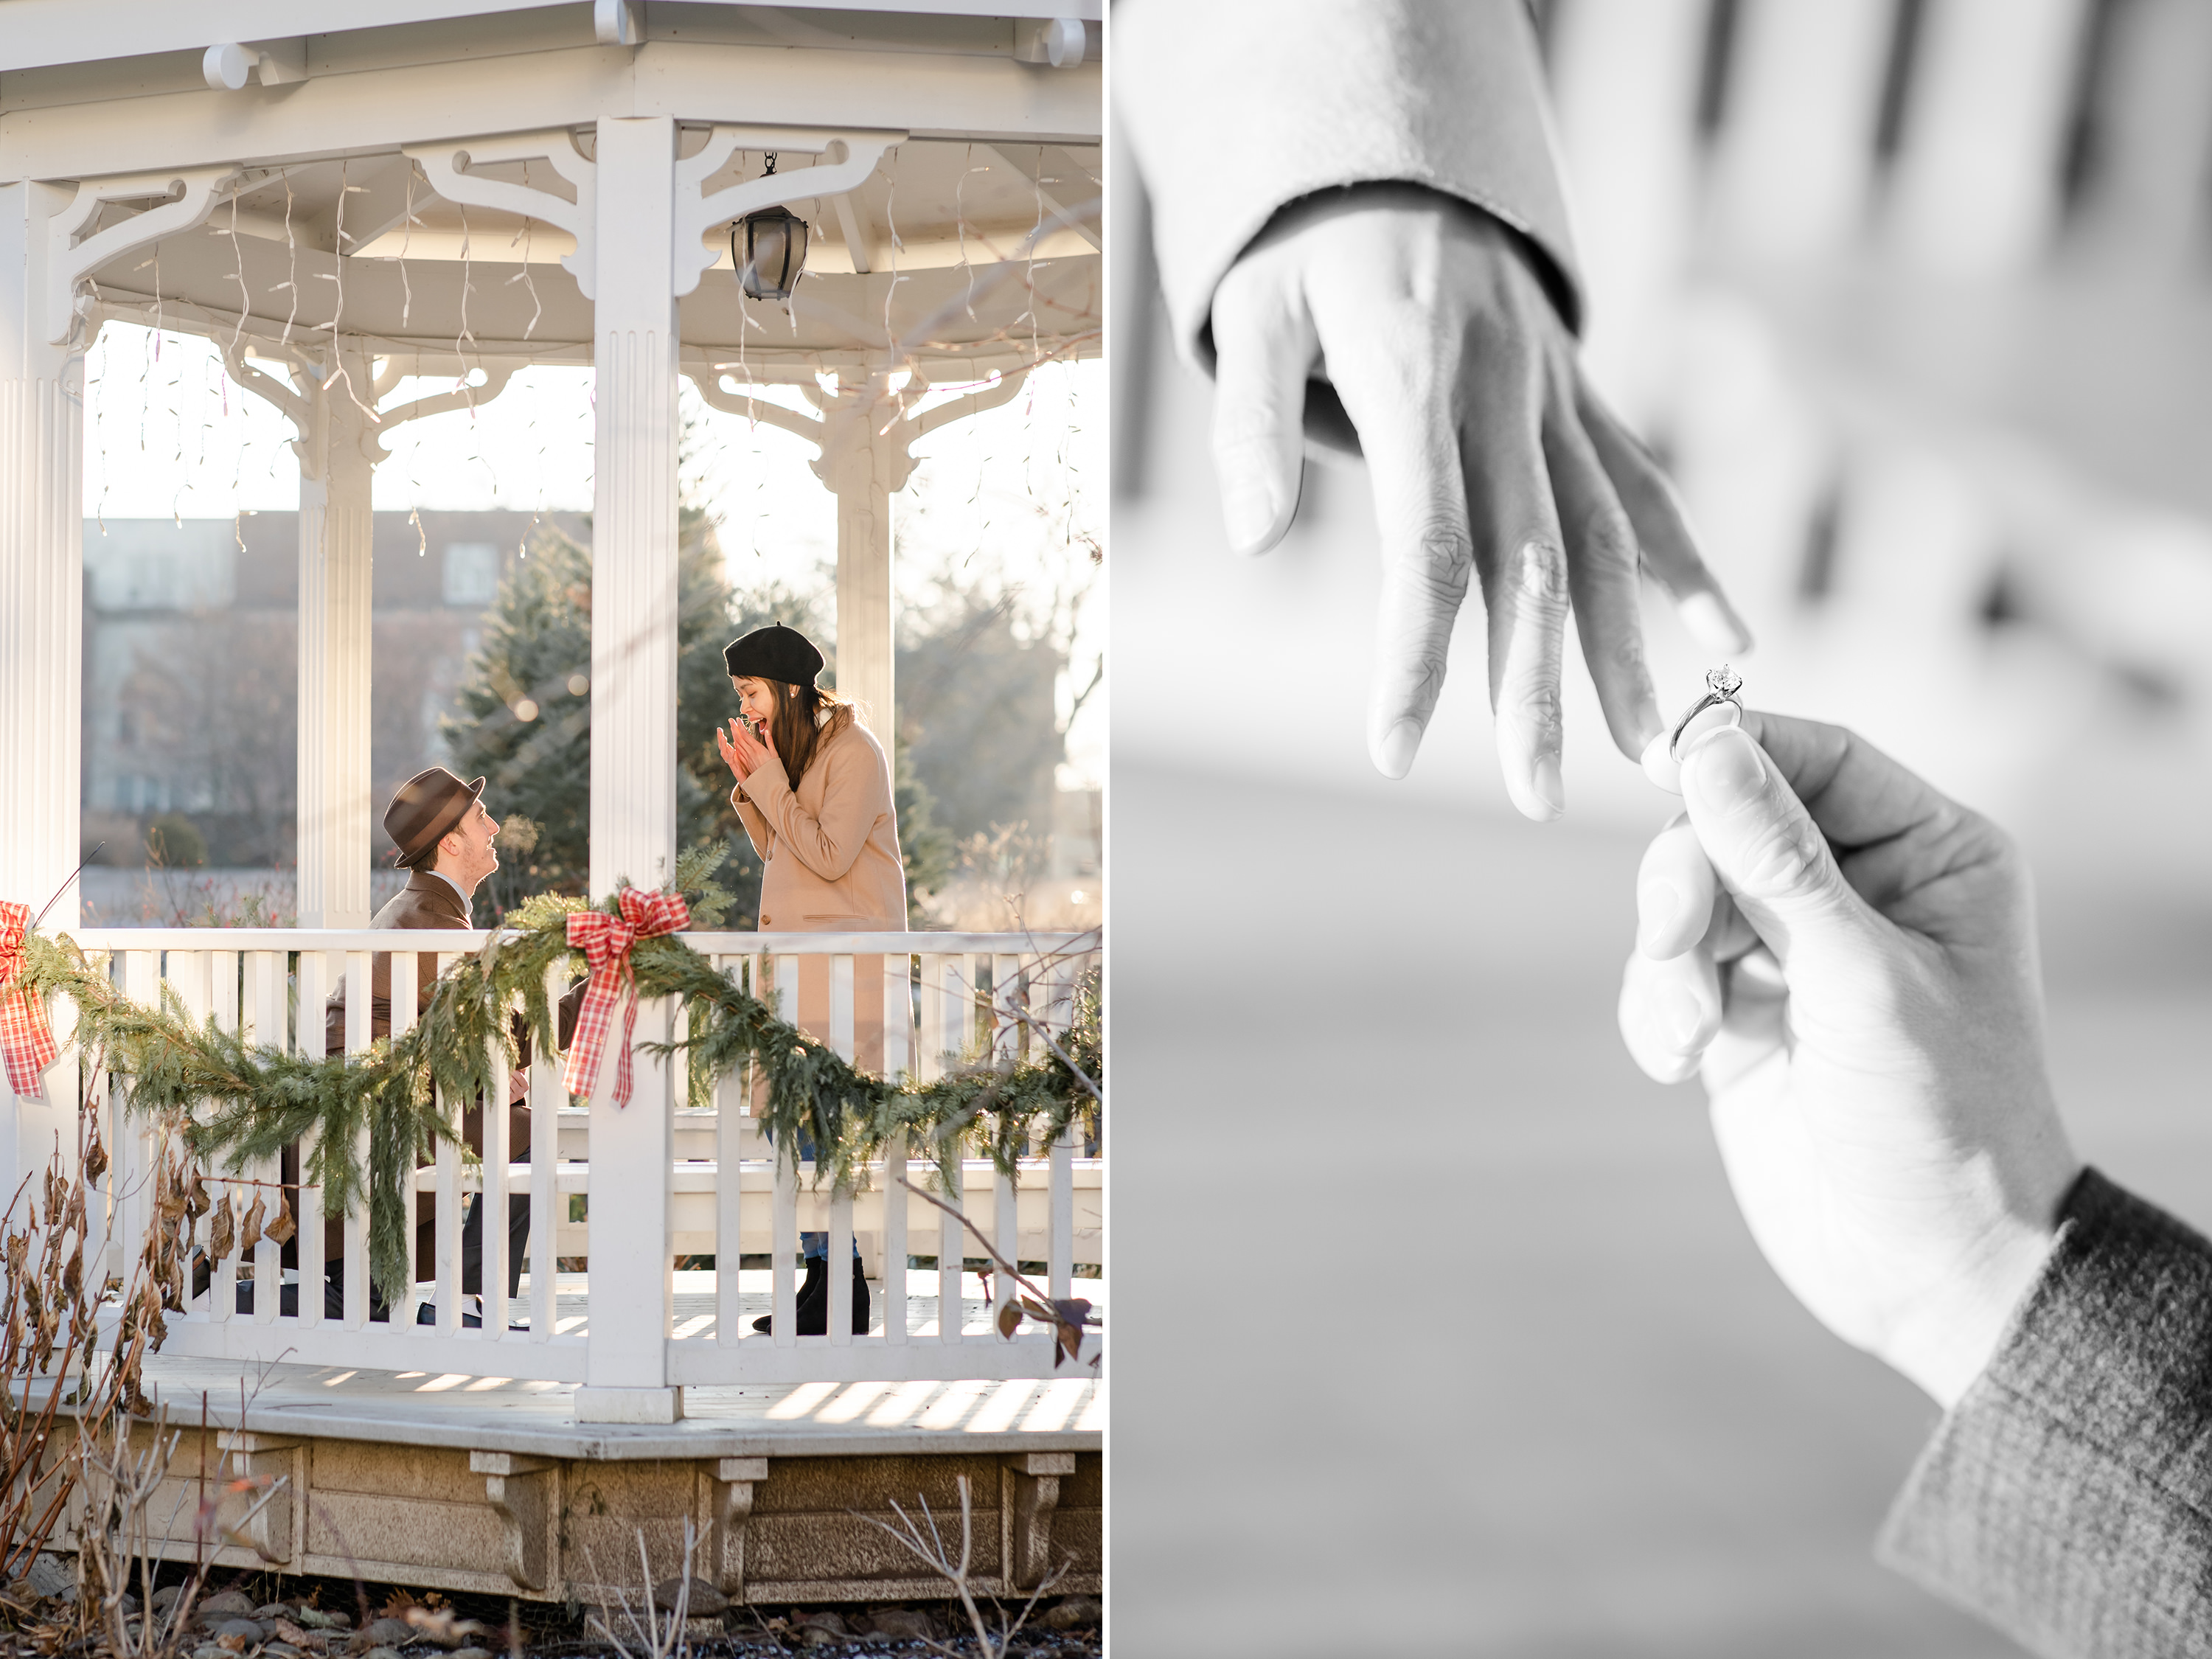 Proposal at the Hintz Alumni Garden gazebo